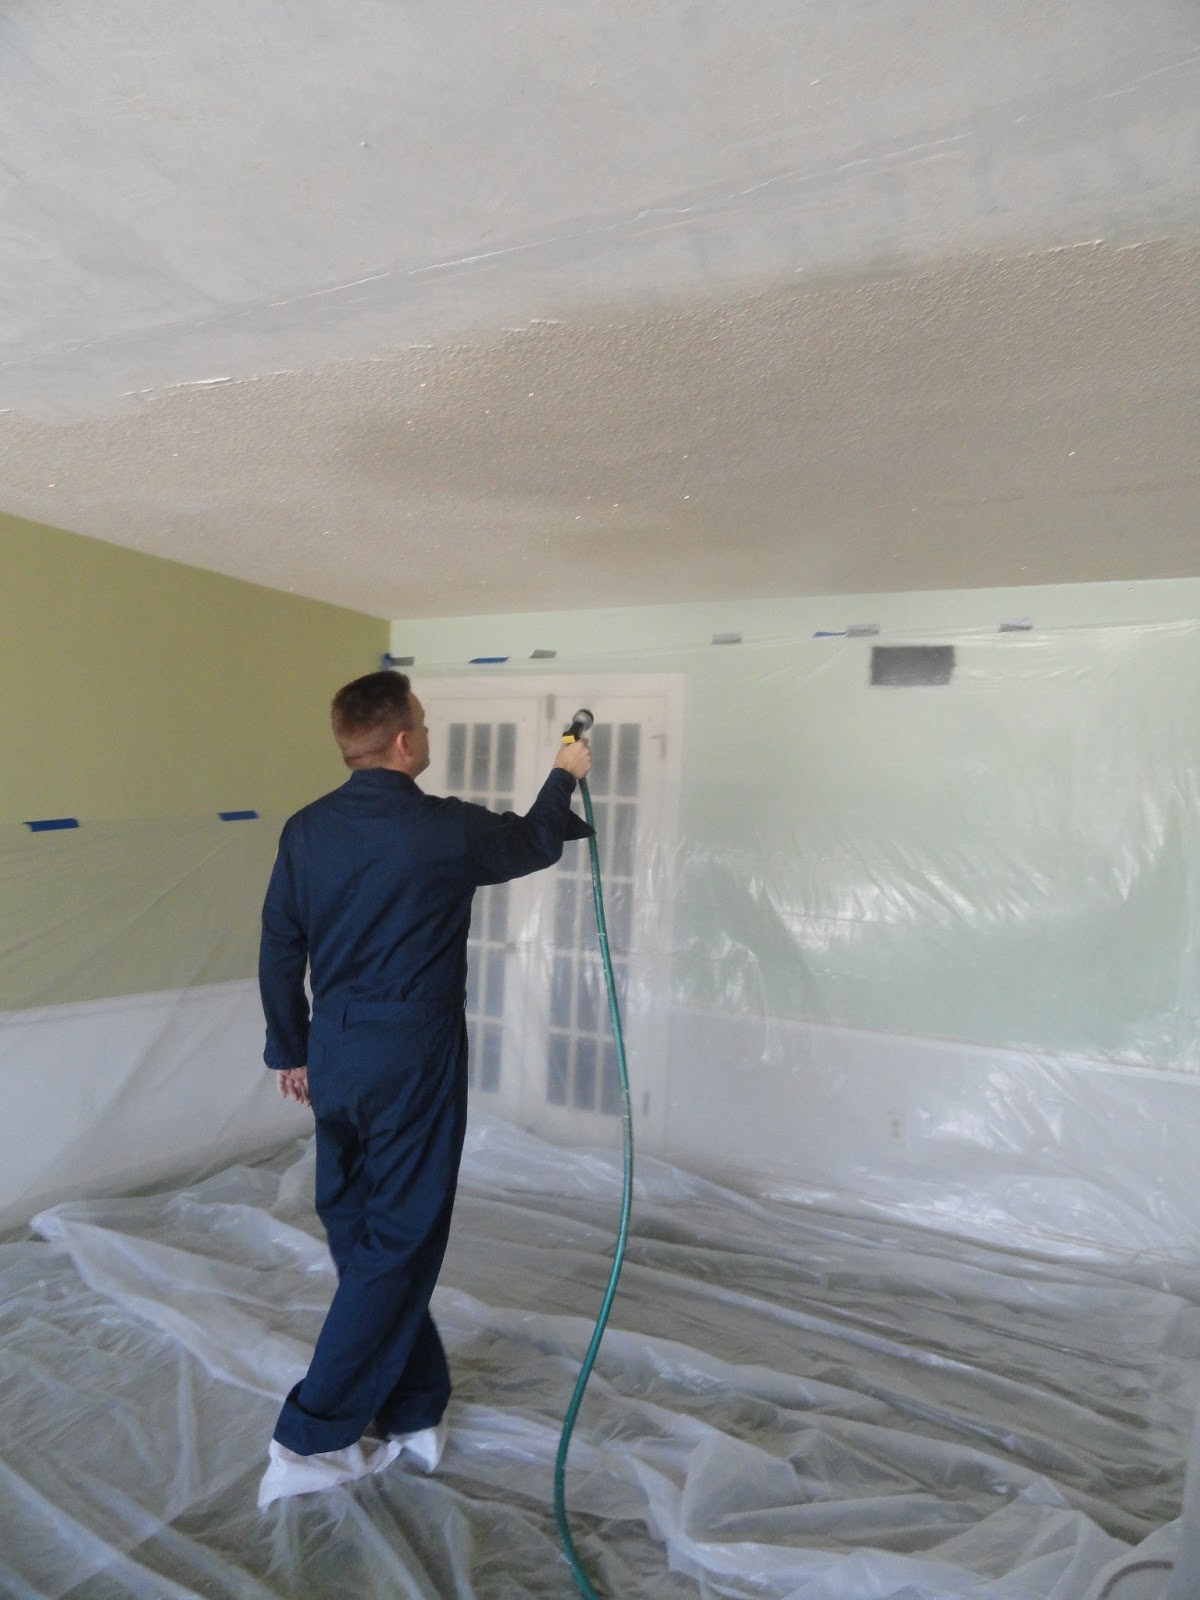 House 2 home diy popcorn ceiling removal for How to remove popcorn ceiling without water